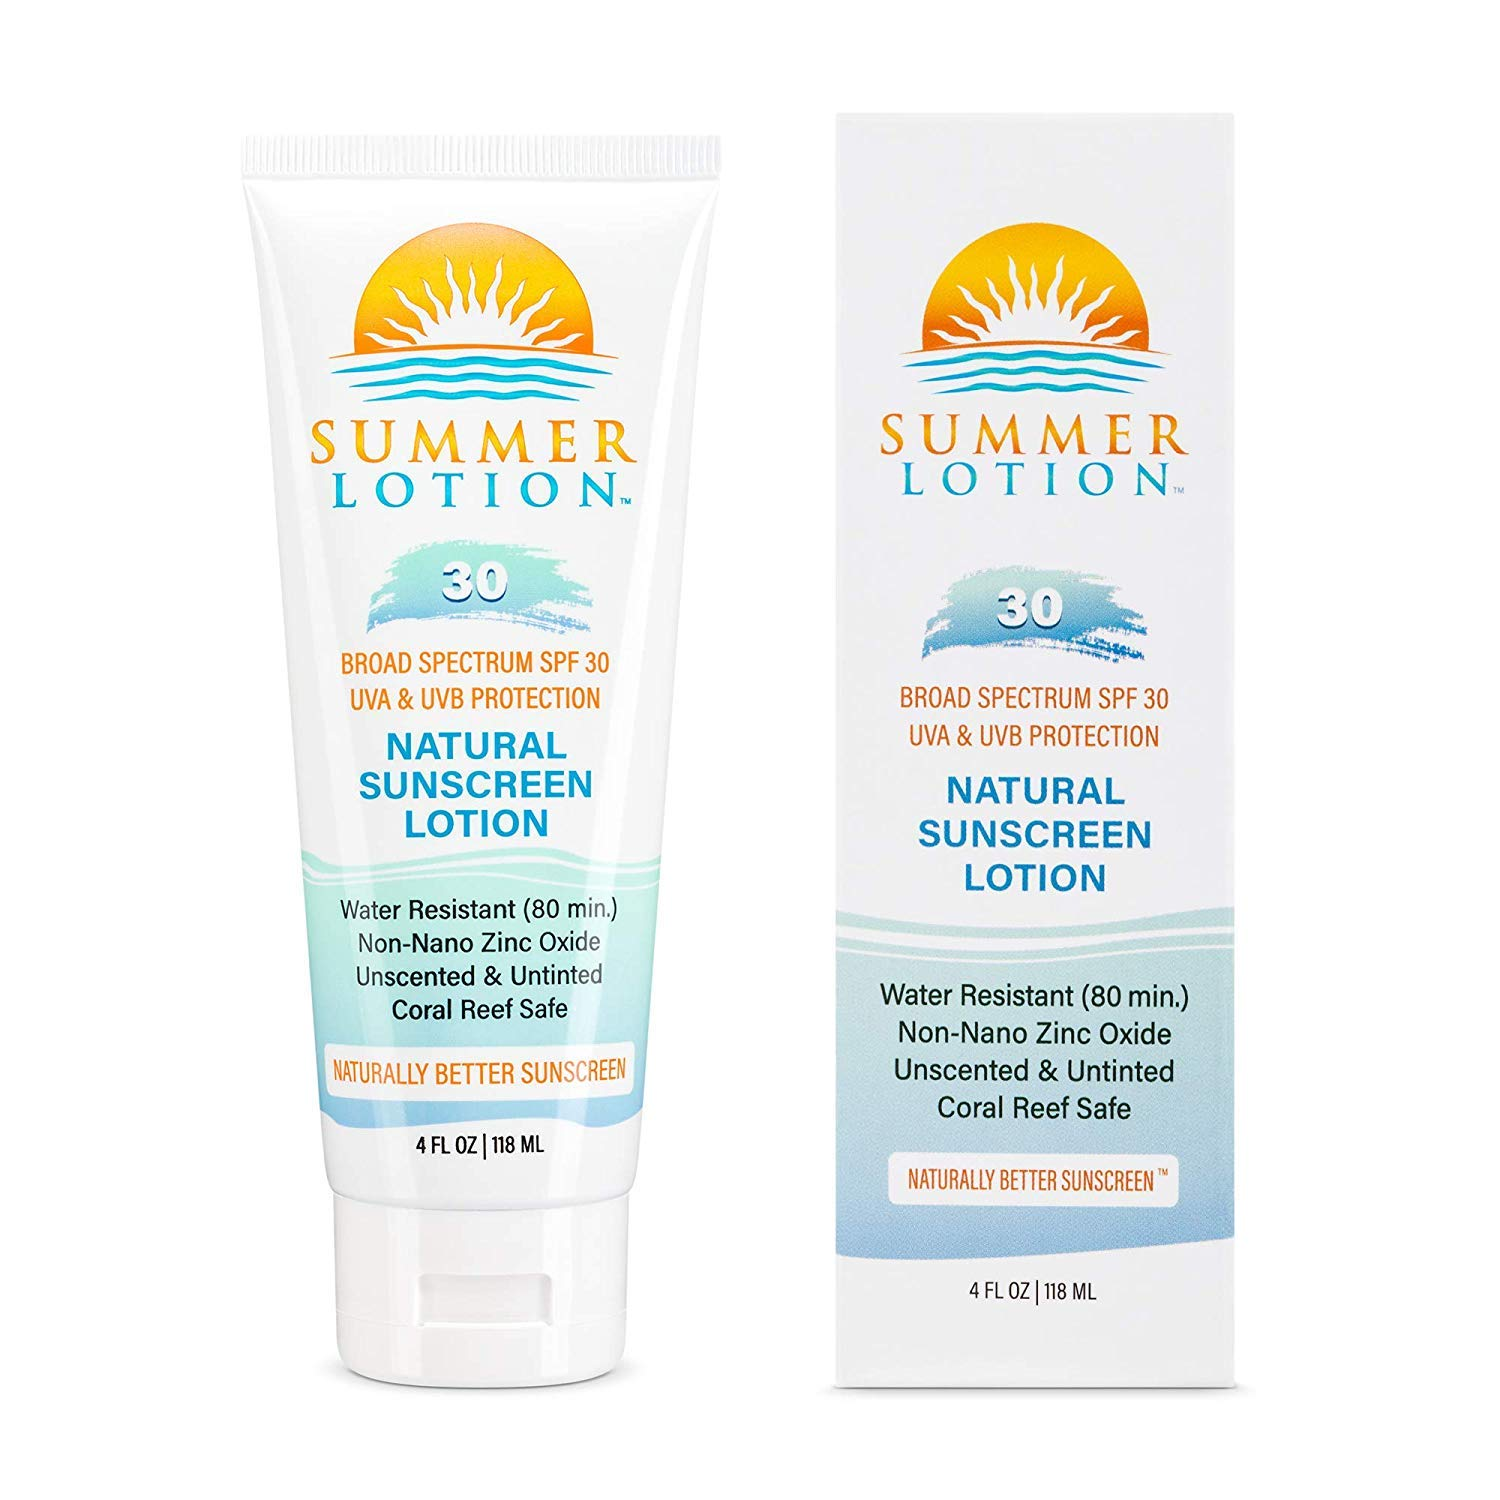 Summer Lotion - Natural Sunscreen Lotion with Zinc Oxide SPF 30 - UVA/UVB – 4 oz